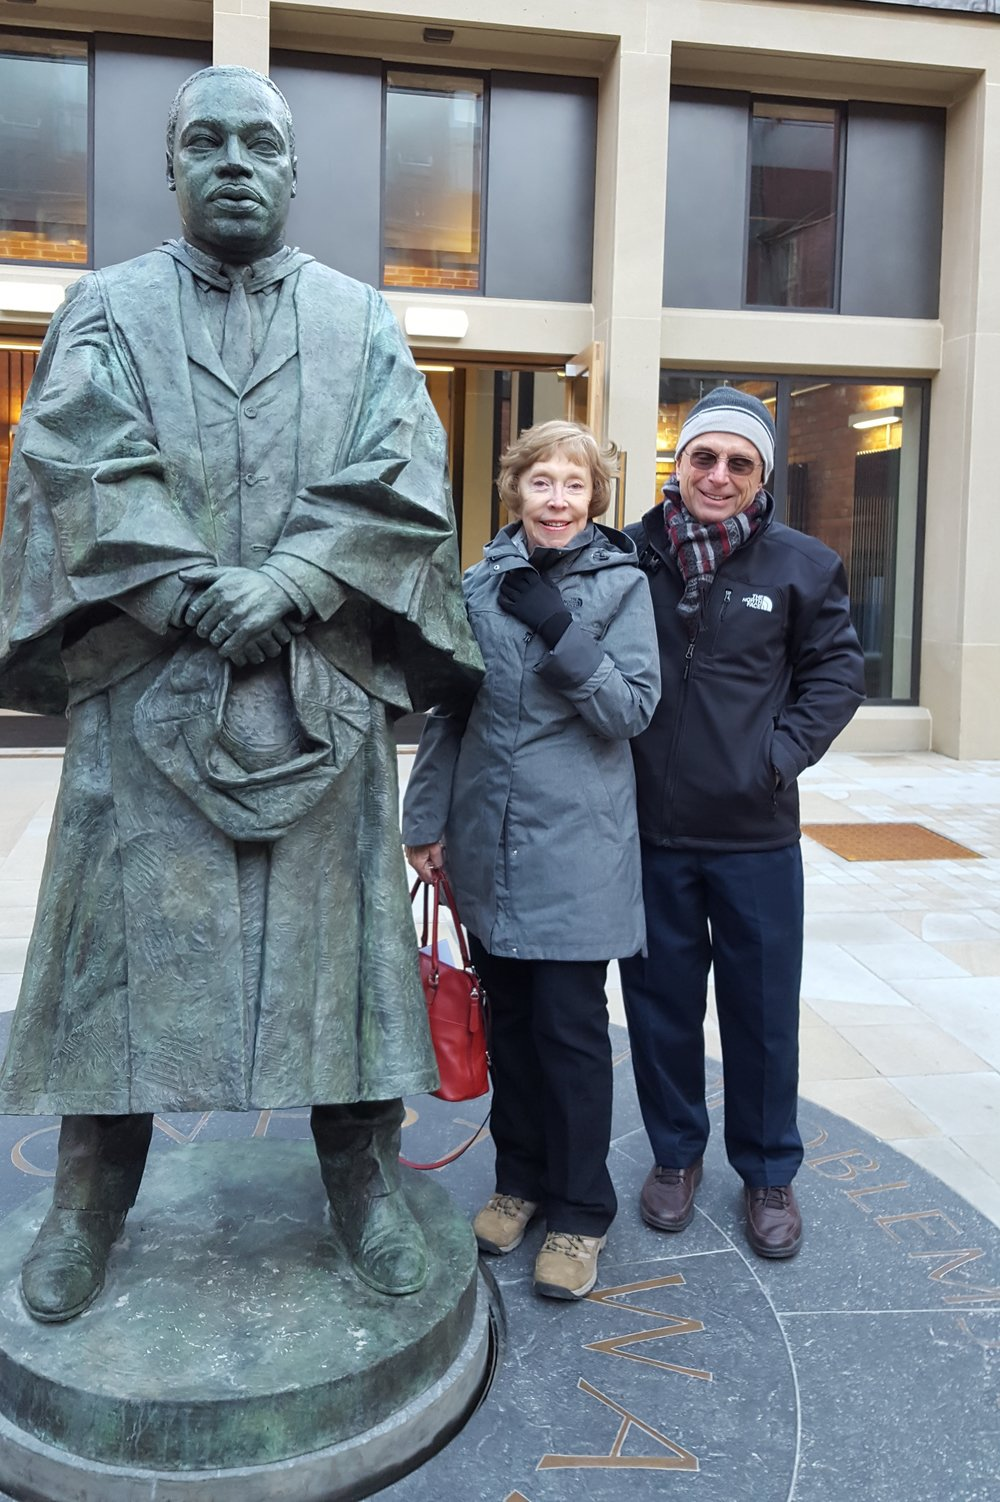 Carol and Frank Kearns at the recently dedicated statue to Martin Luther King, Jr., December 2017